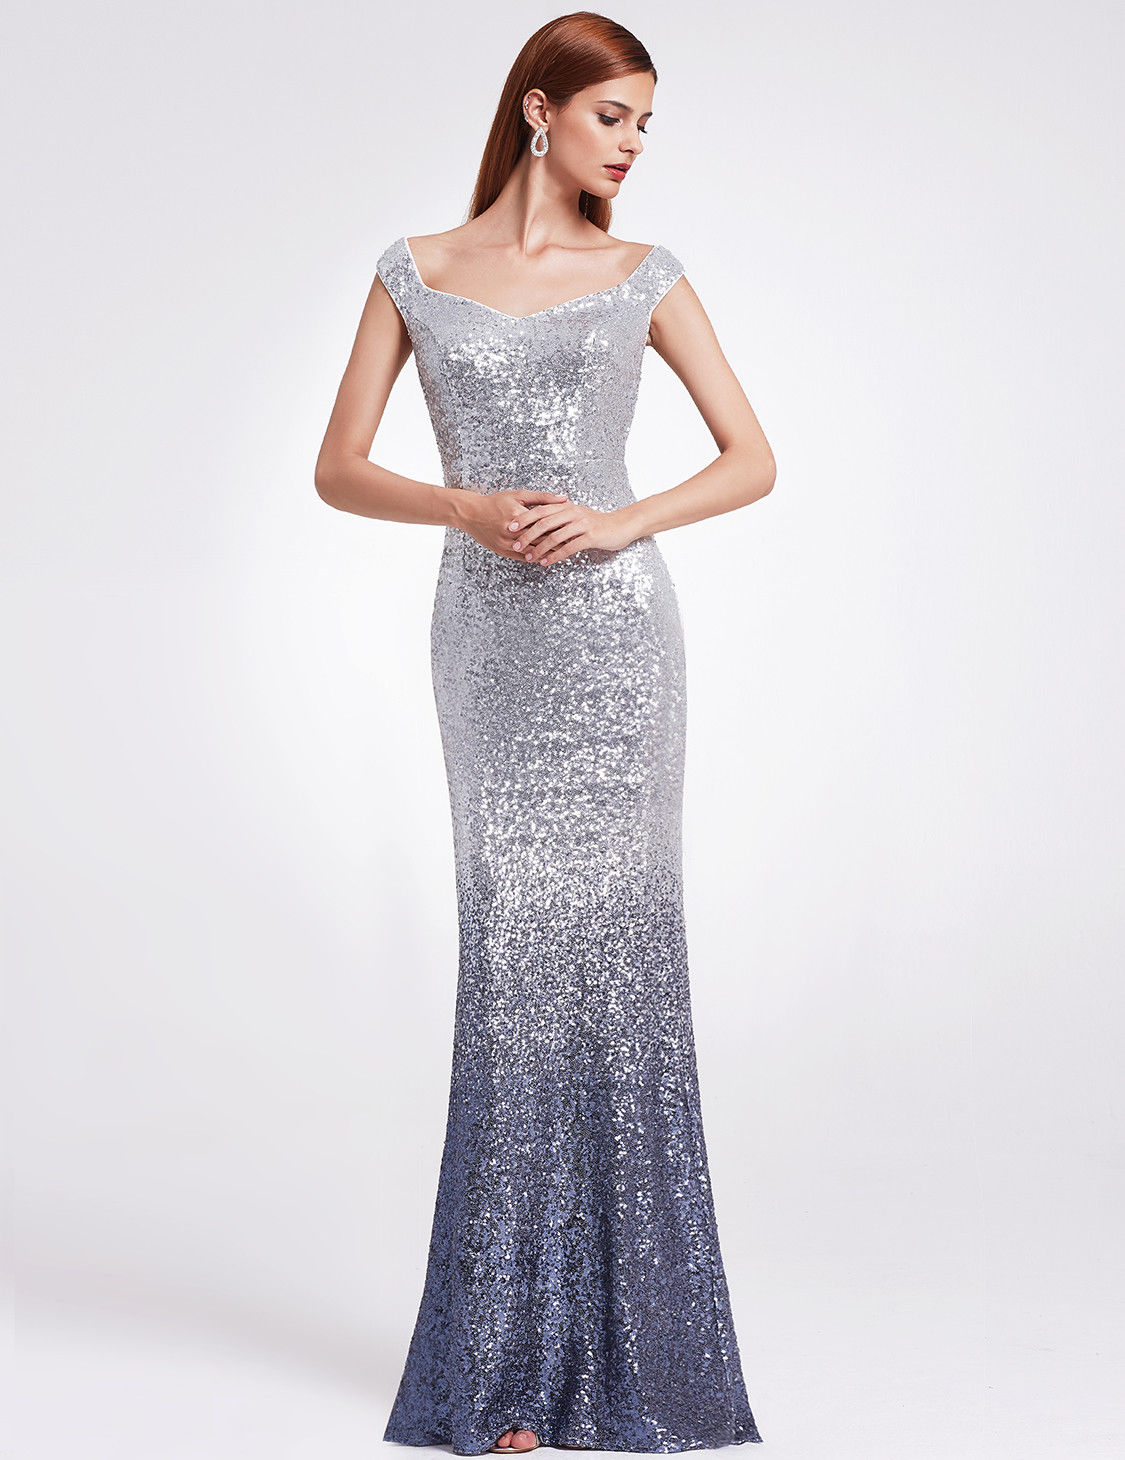 Silver Blue Sequin Fishtail Mermaid Evening Bridesmaid